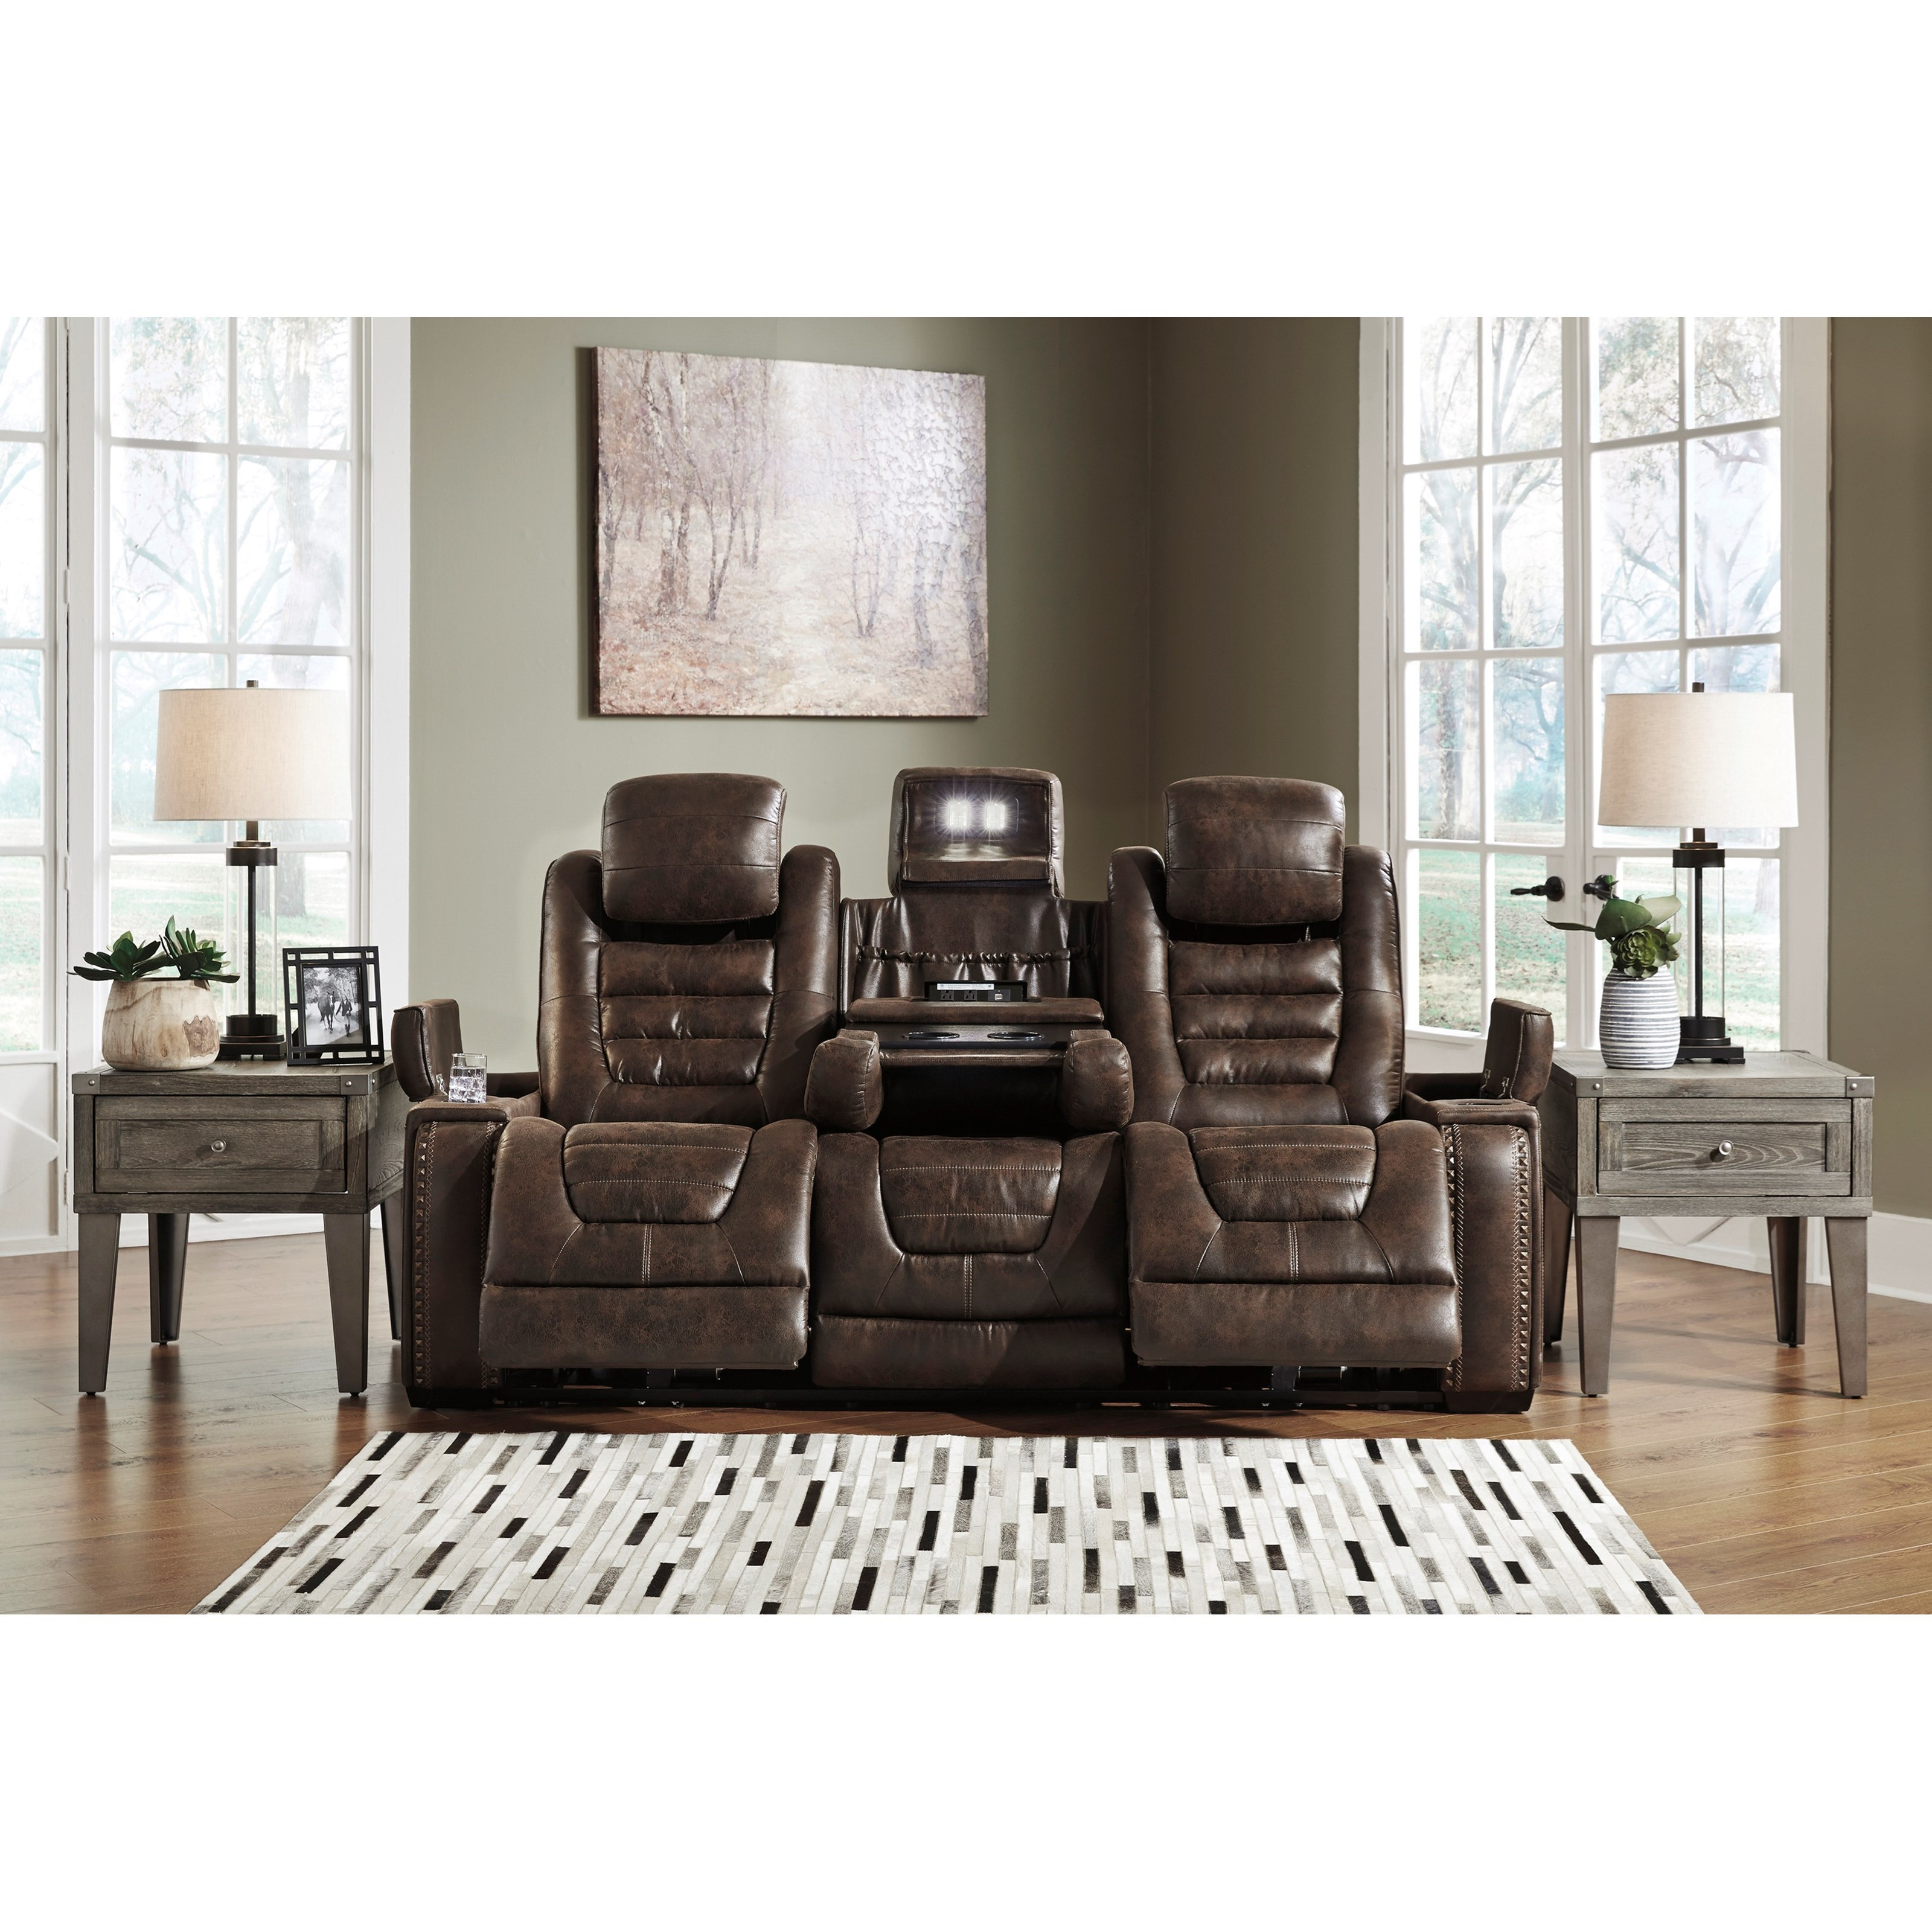 Signature Design By Ashley Game Zone Faux Leather Power Reclining Sofa W Adjustable Headrests